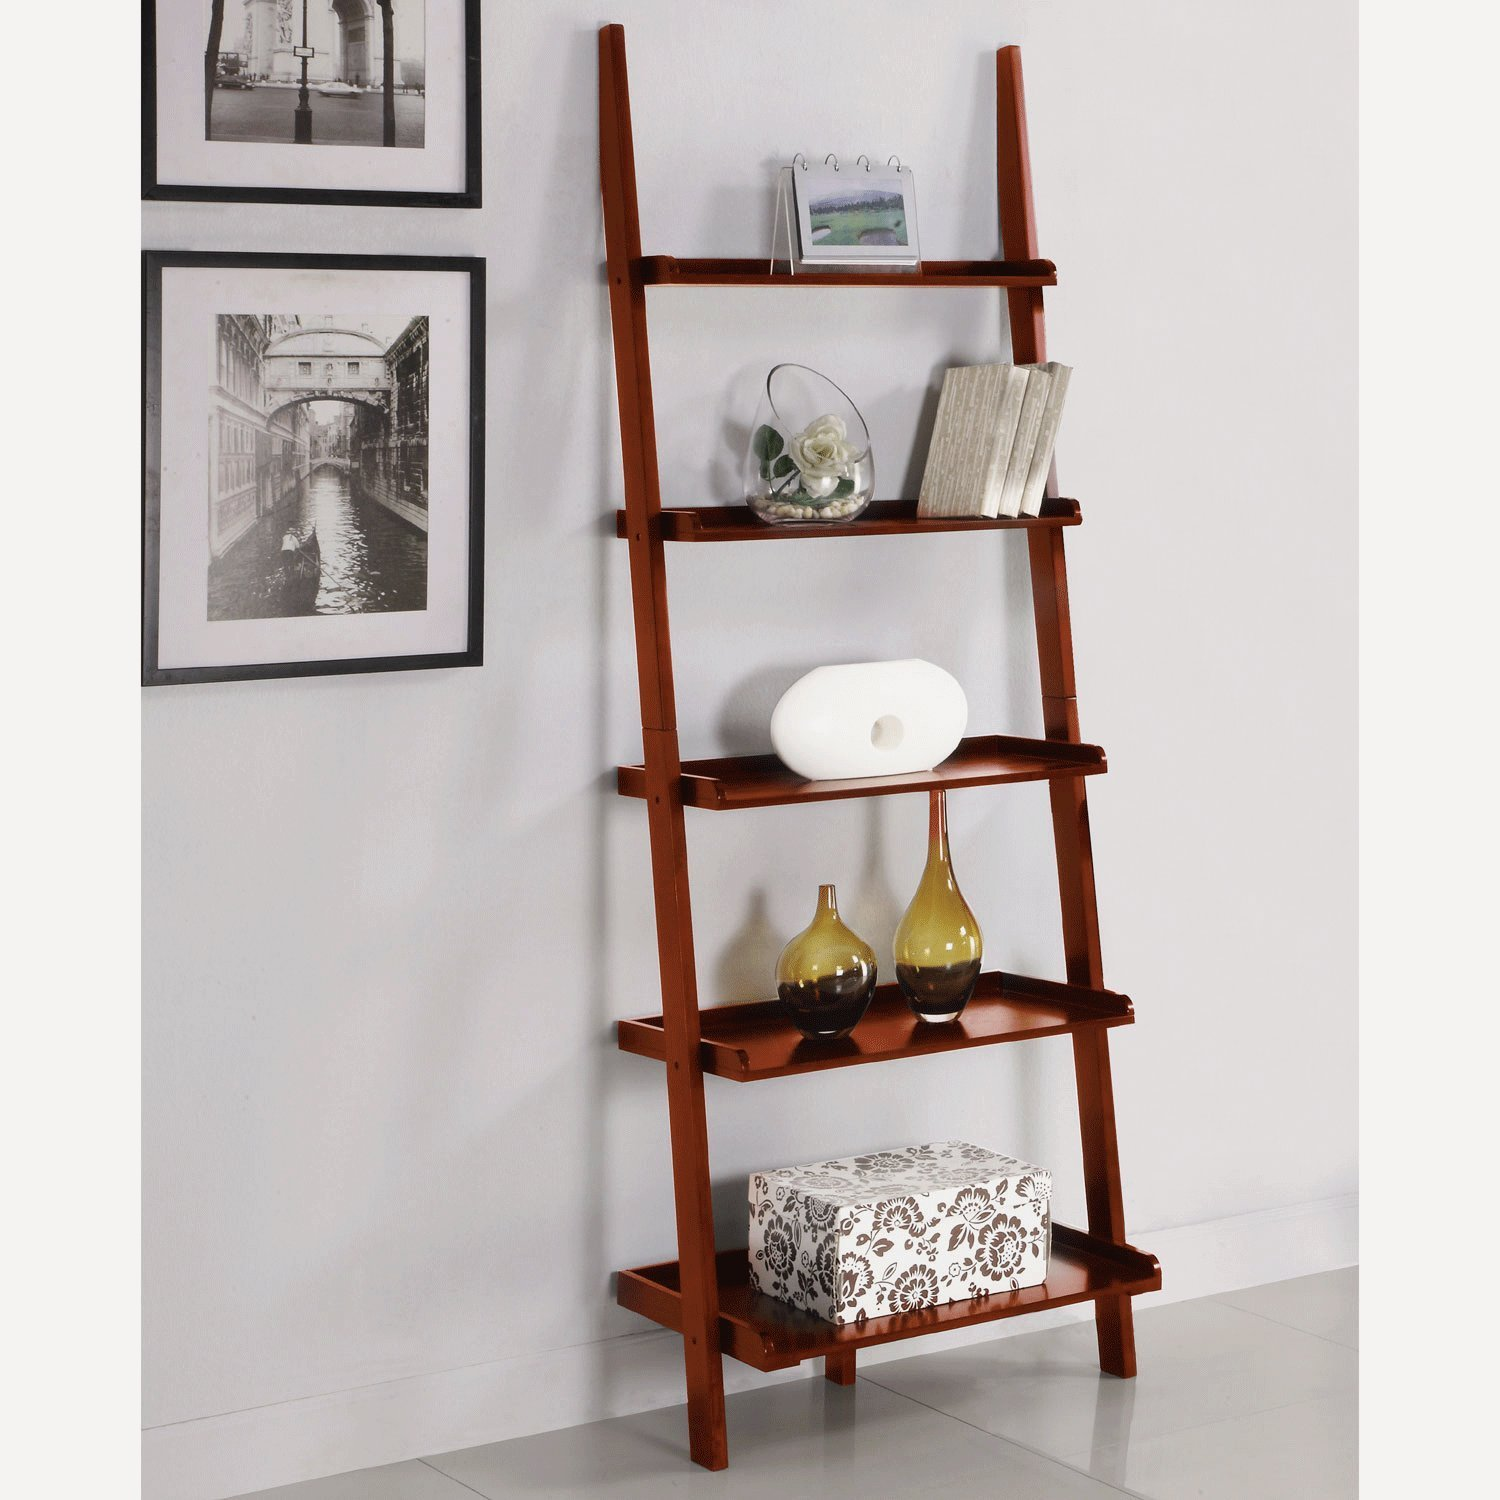 guest bathroom decorating ideas pictures - Leaning Ladder Bookshelf